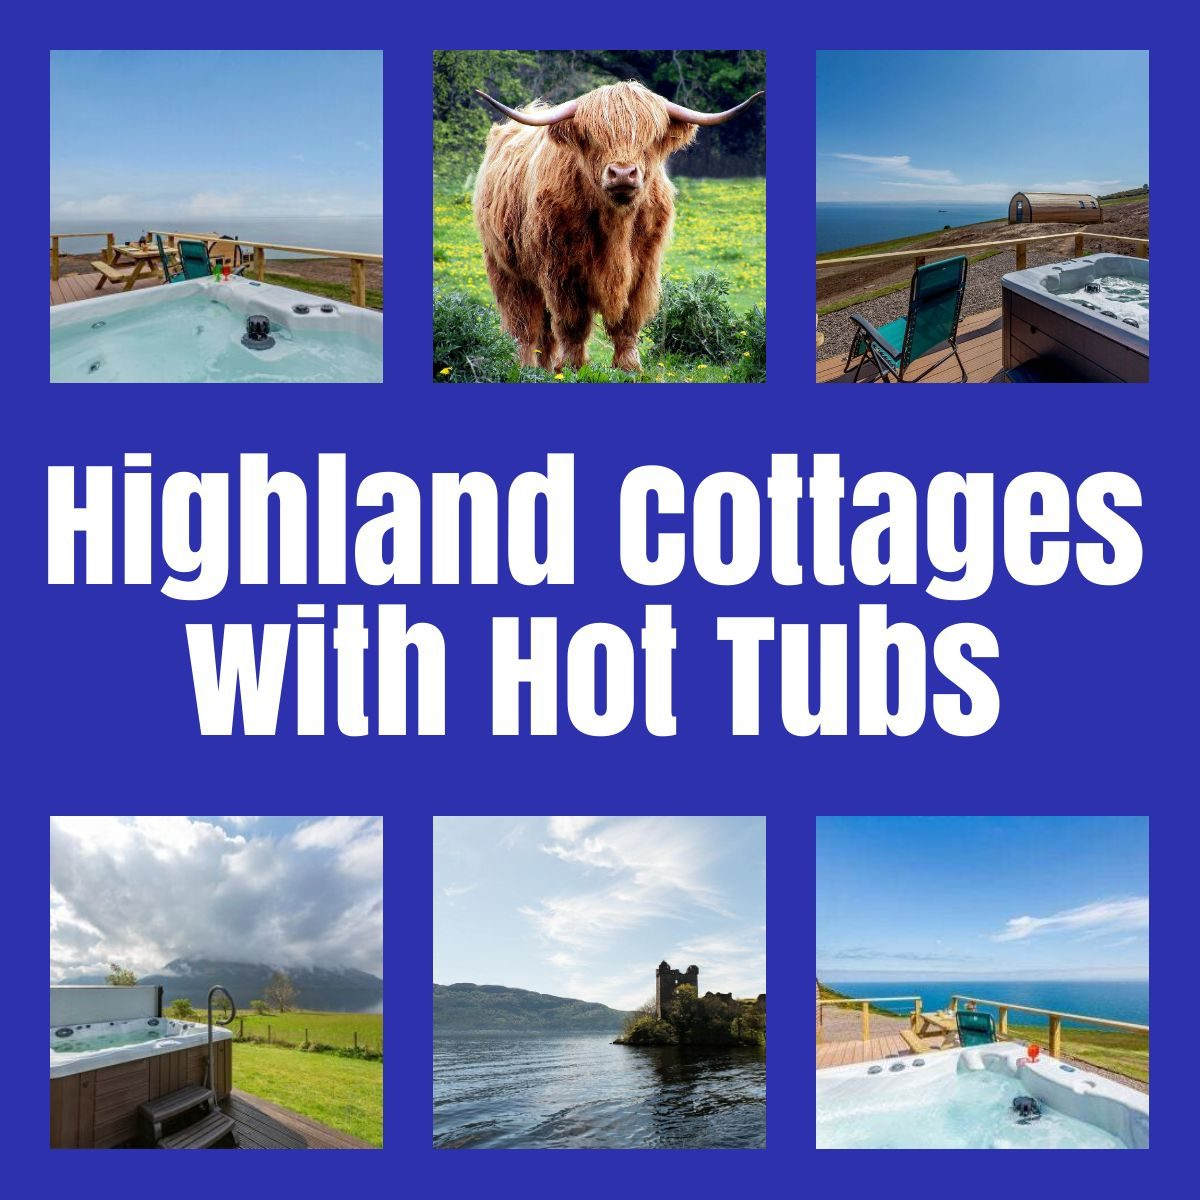 highland cottages with hot tubs the professional traveller